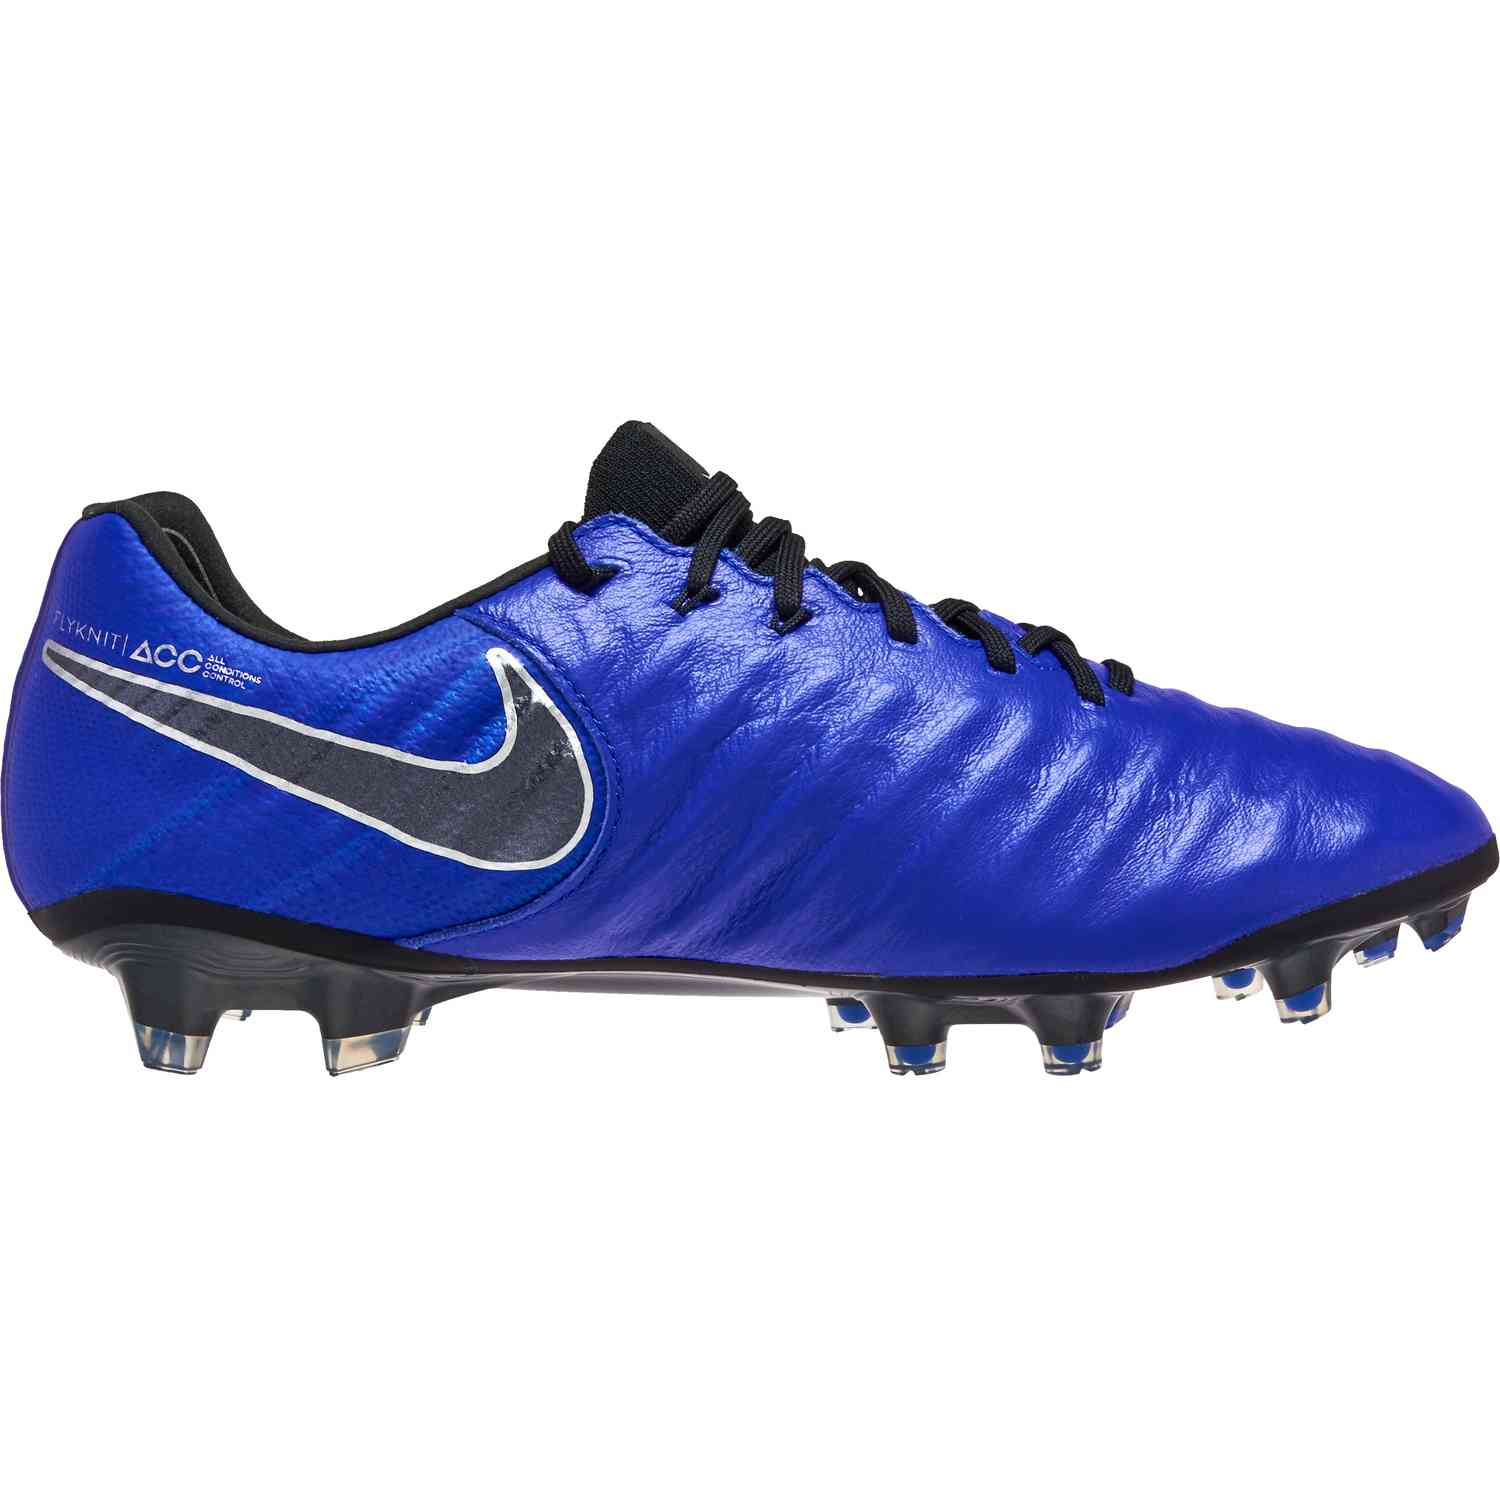 13eaac252 Nike Tiempo Legend 7 Elite FG - Racer Blue Black Metallic Silver ...